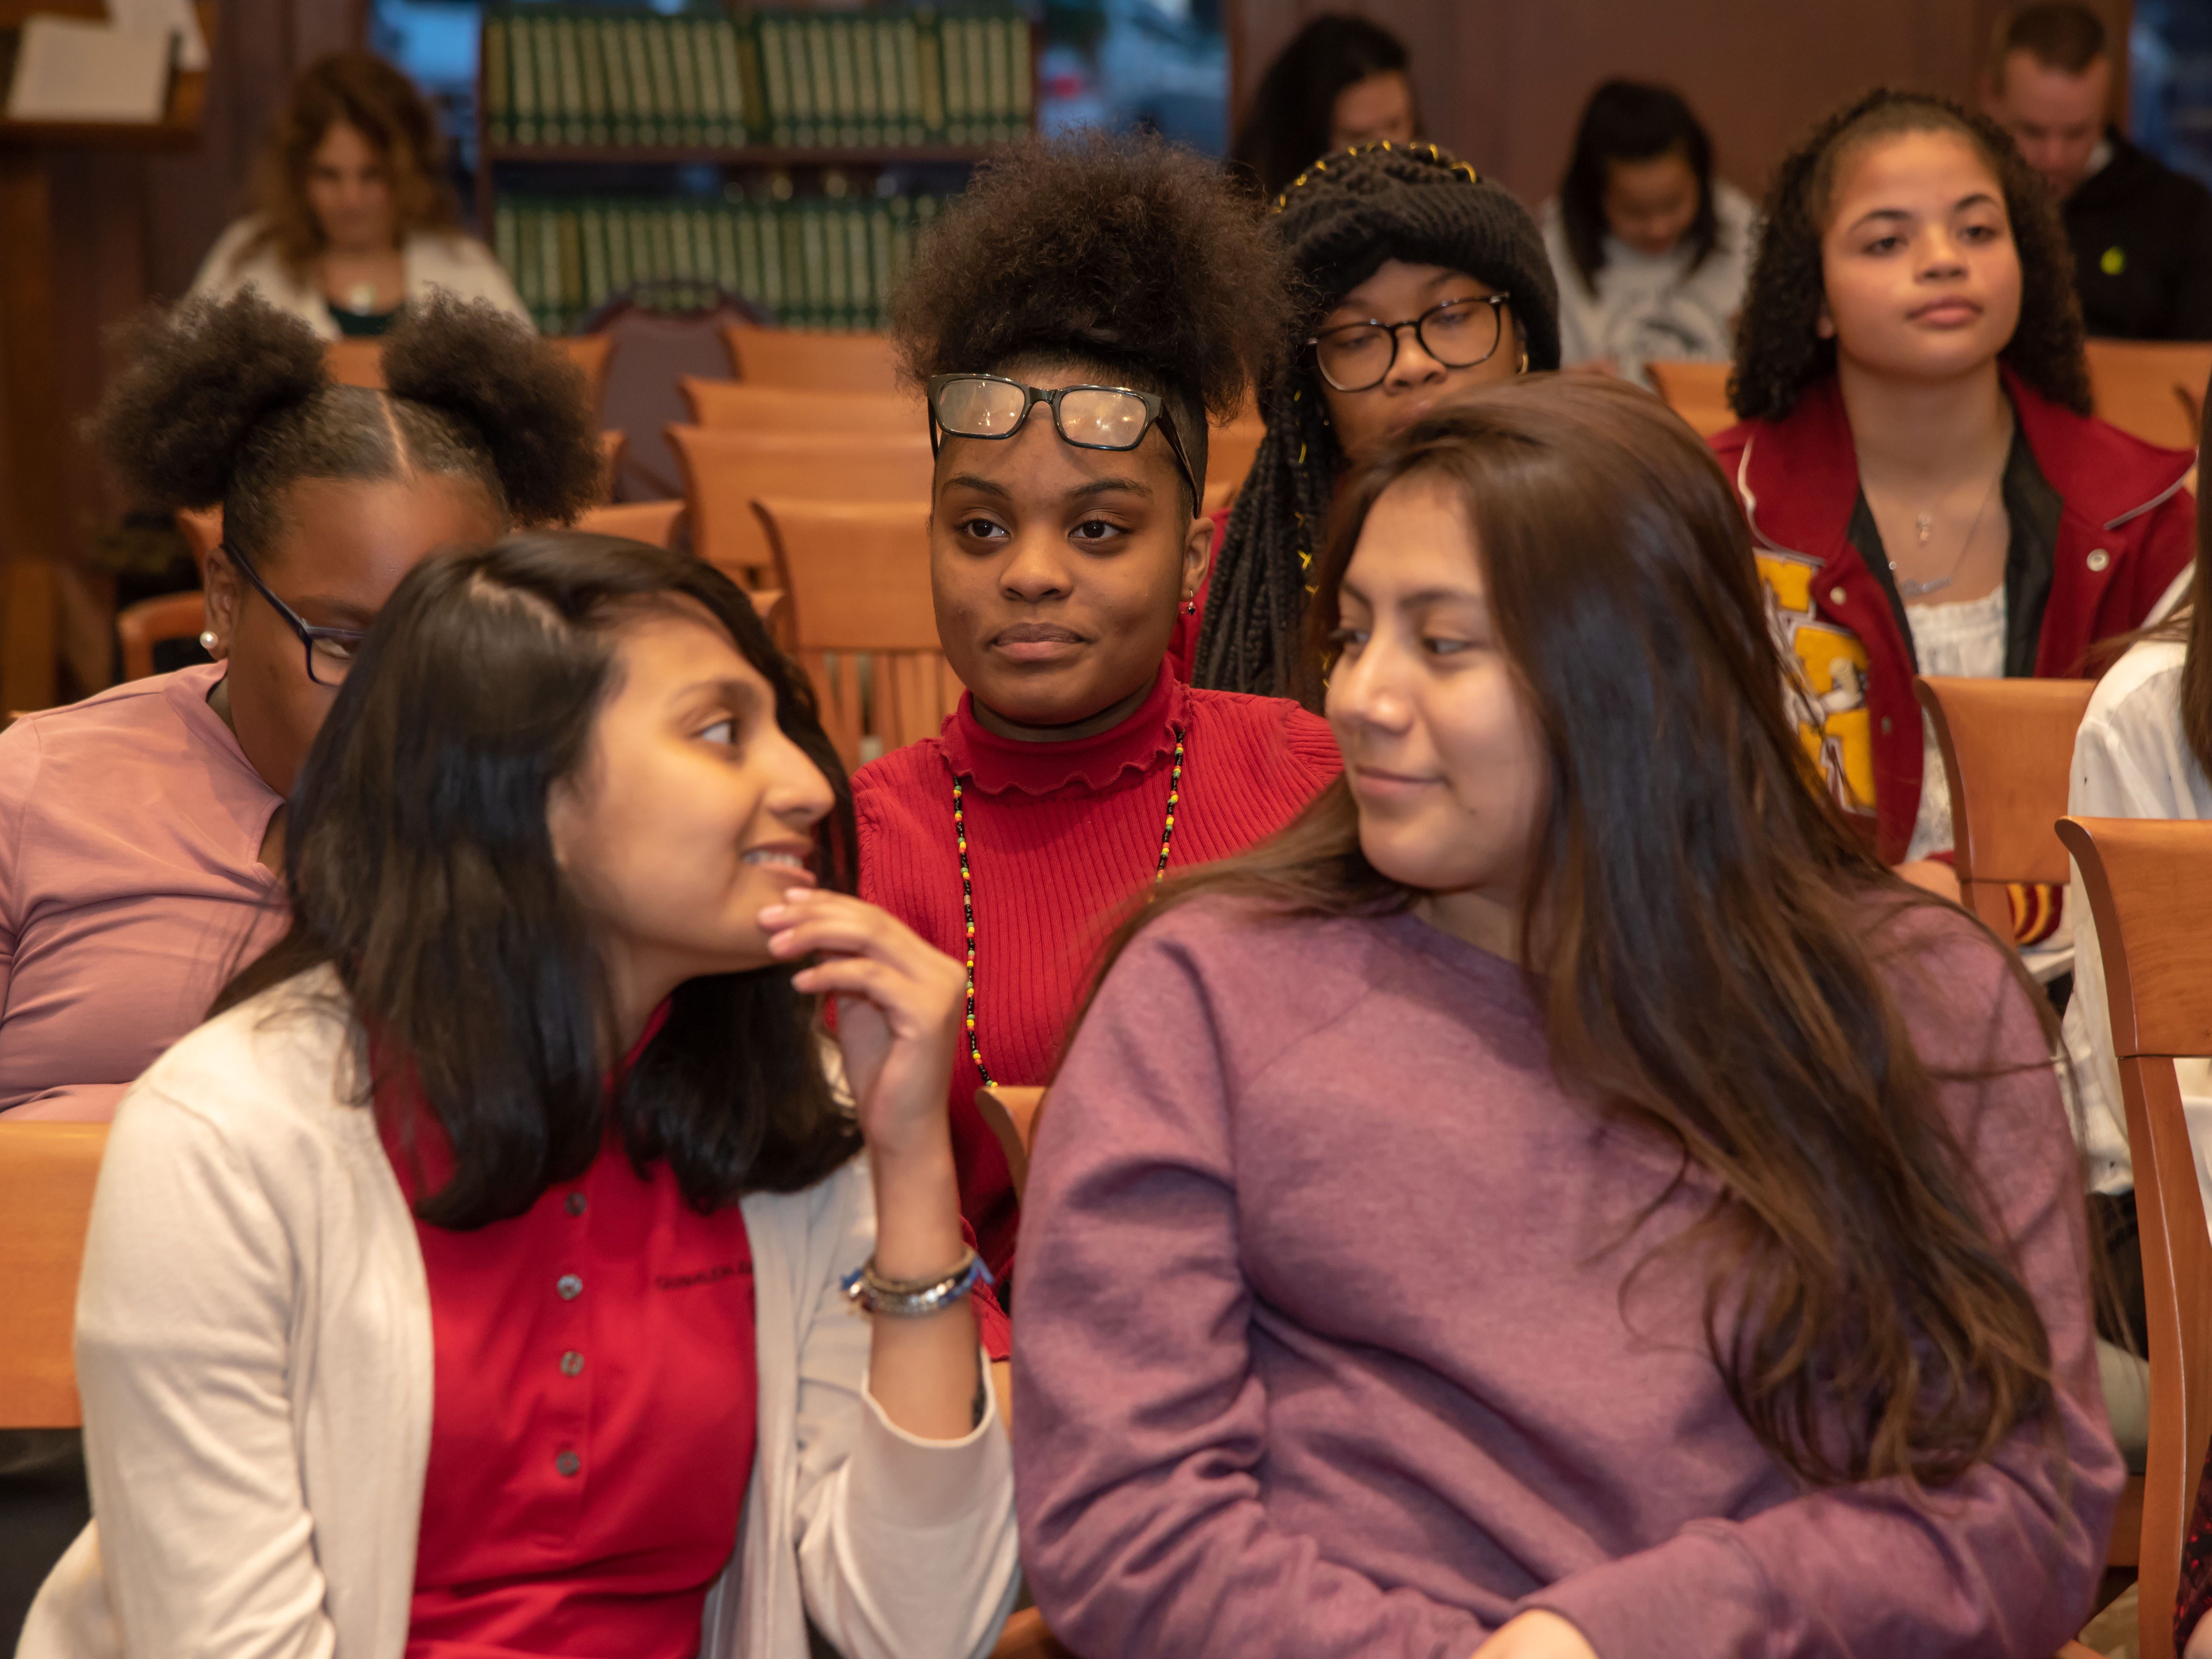 Students from Asbury Park talk about completing a mini-medical school lecture series at Georgian Court University. They were among more than 60 students who participated in the program, which was sponsored by the Hackensack Meridian School of Medicine at Seton Hall University.